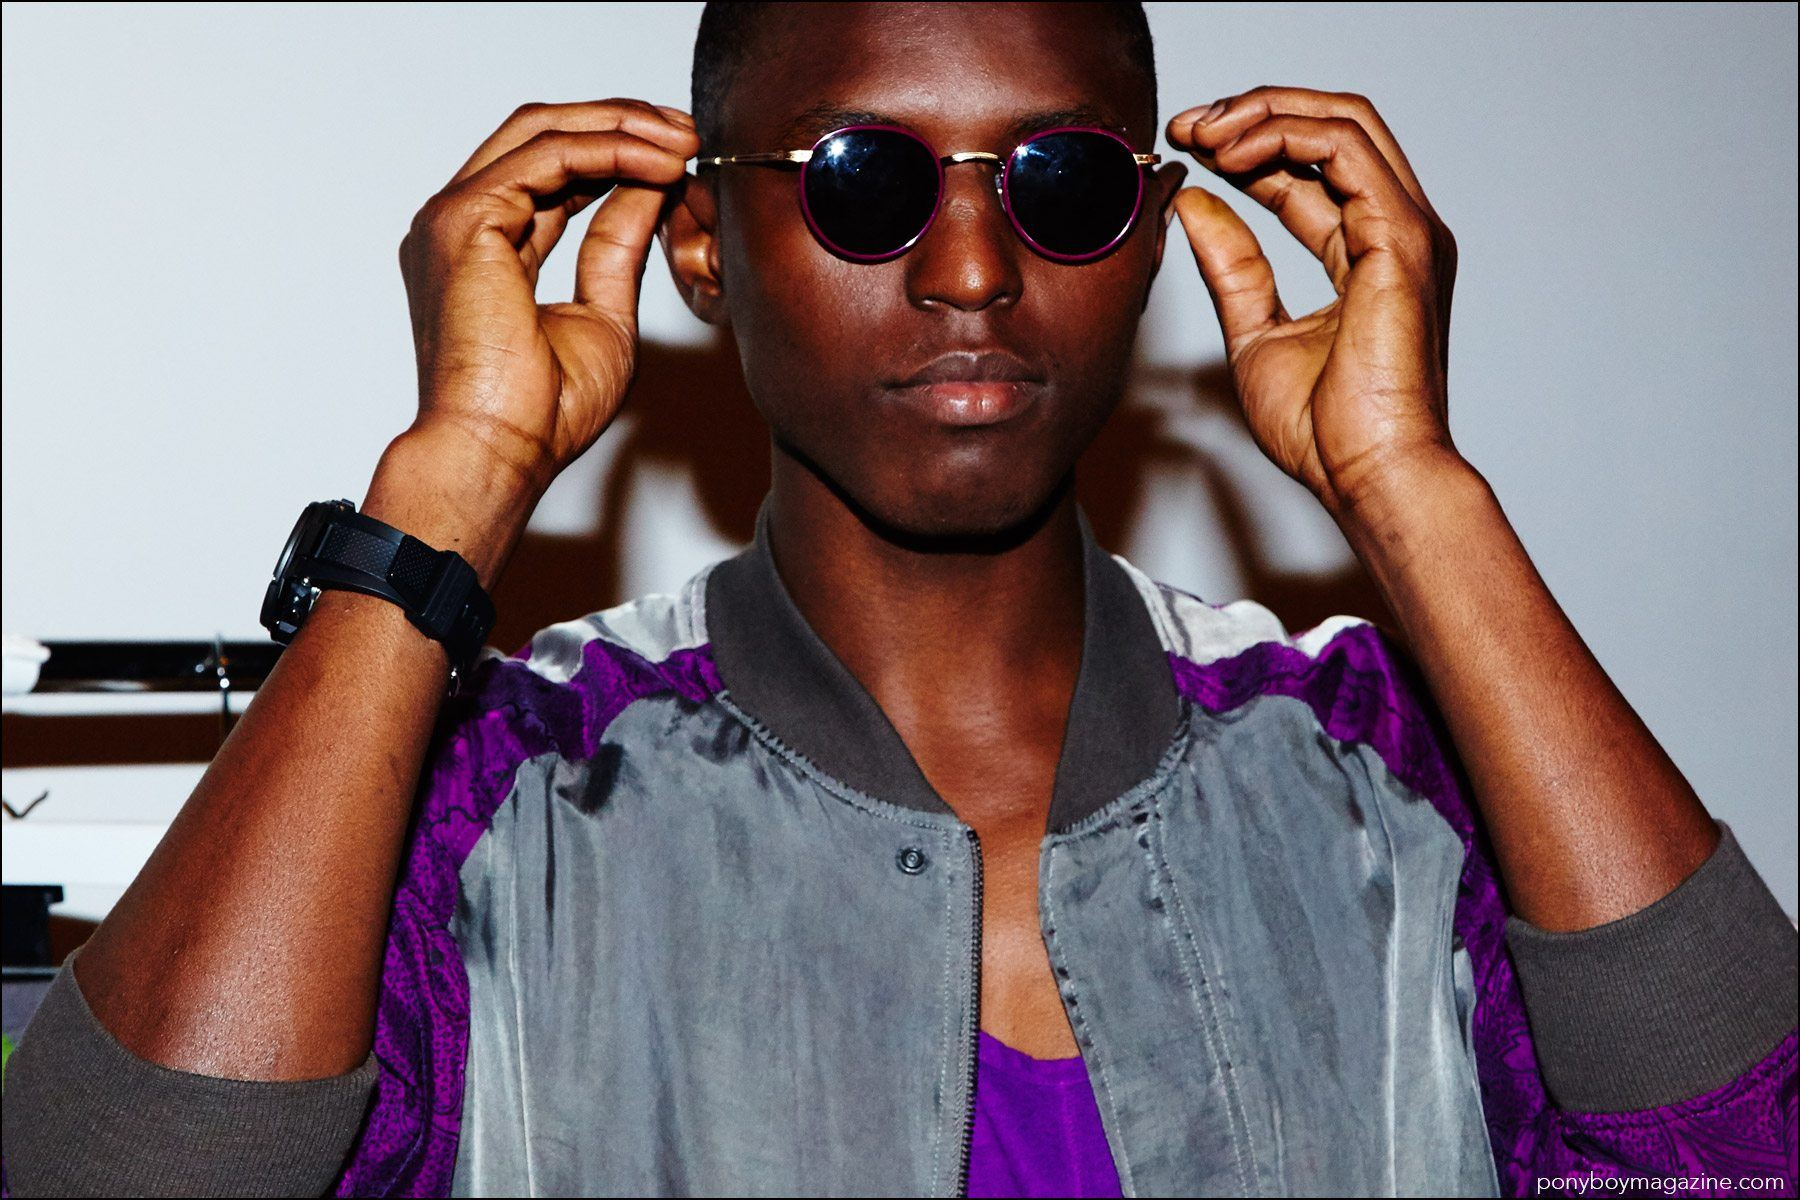 A male model adjusts his sunglasses, backstage at Robert Geller Spring/Summer 2017 menswear show. Photography by Alexander Thompson for Ponyboy magazine NY.